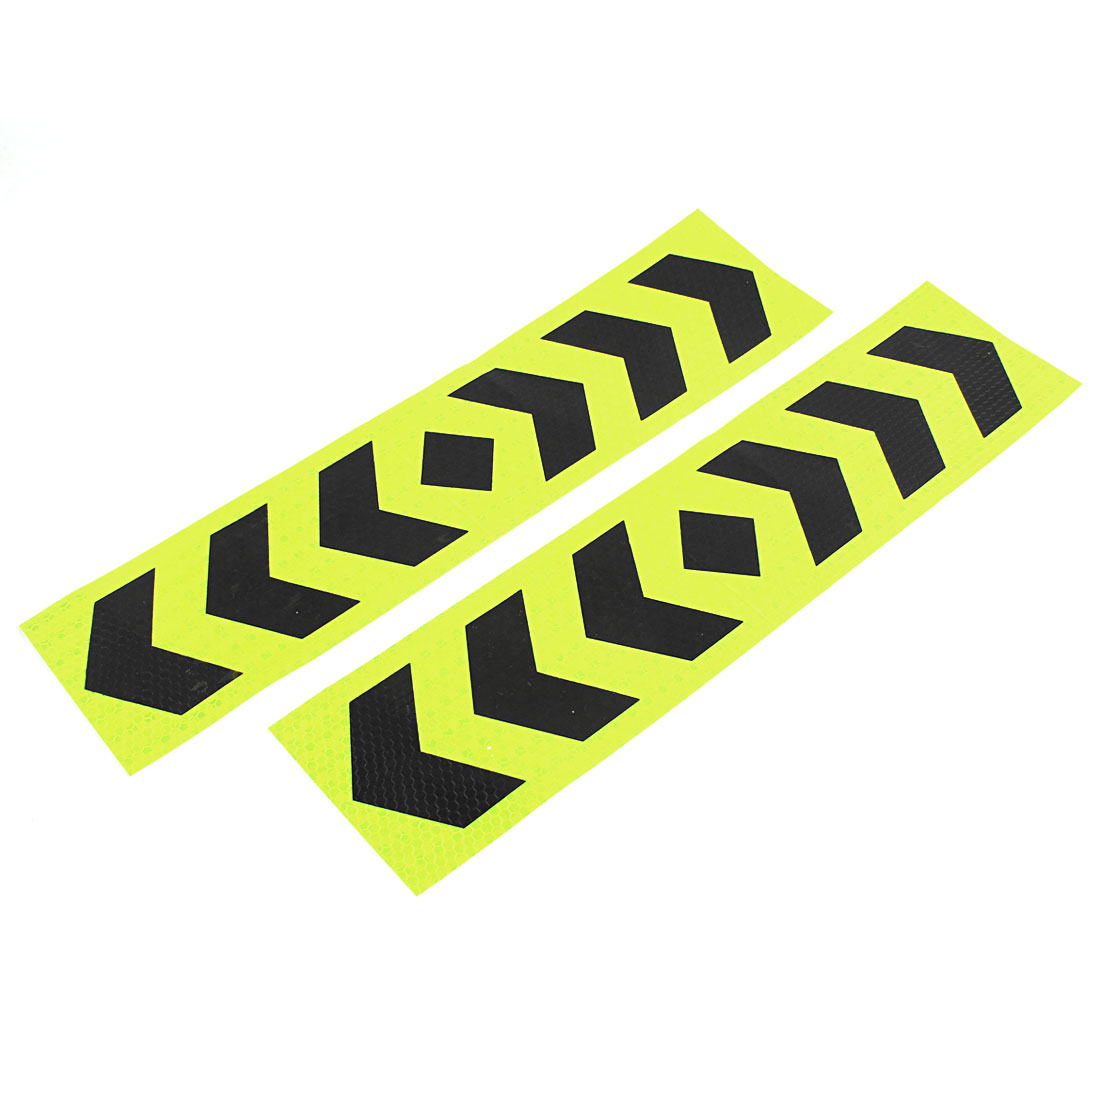 2 Pcs Plastic Arrows Printed Self Adhesive Type Car SUV Reflective Warning Sign Sticker Tape